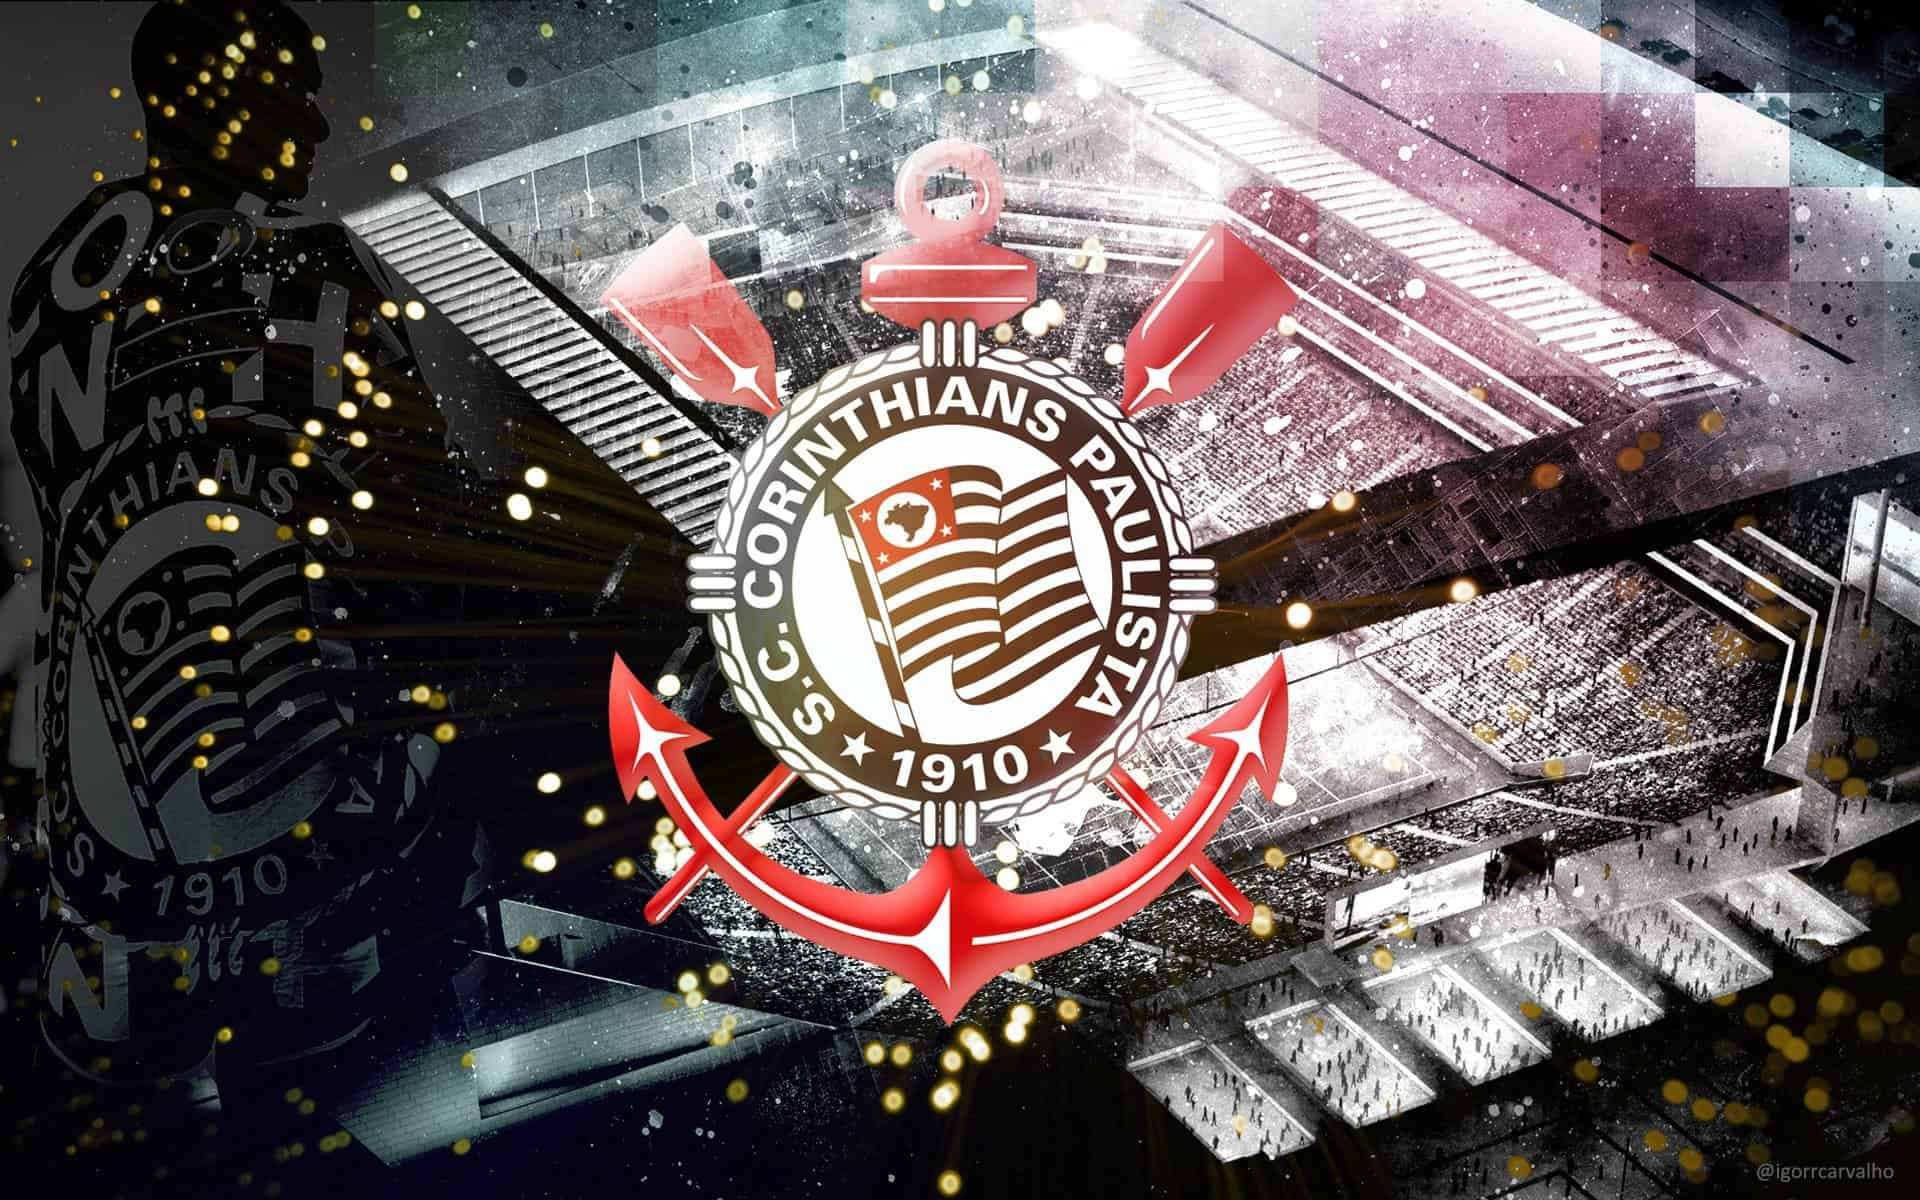 Corinthians v Santos - Brazil Serie A Betting Preview